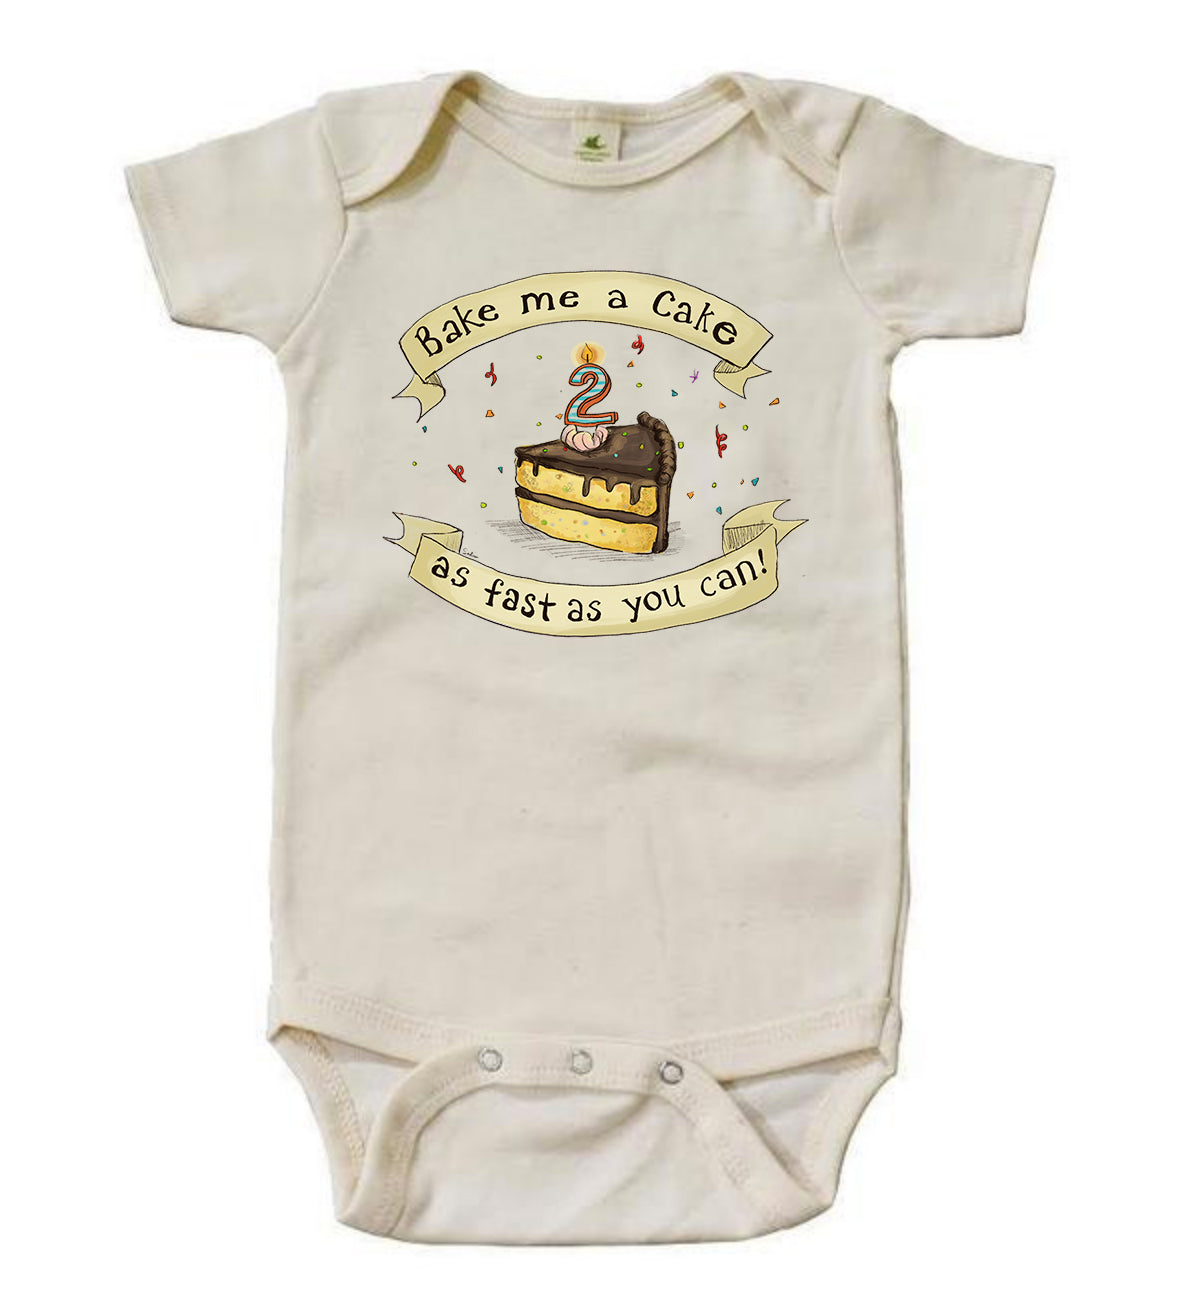 Copy of Bake Me a Cake! 2 [Bodysuit]